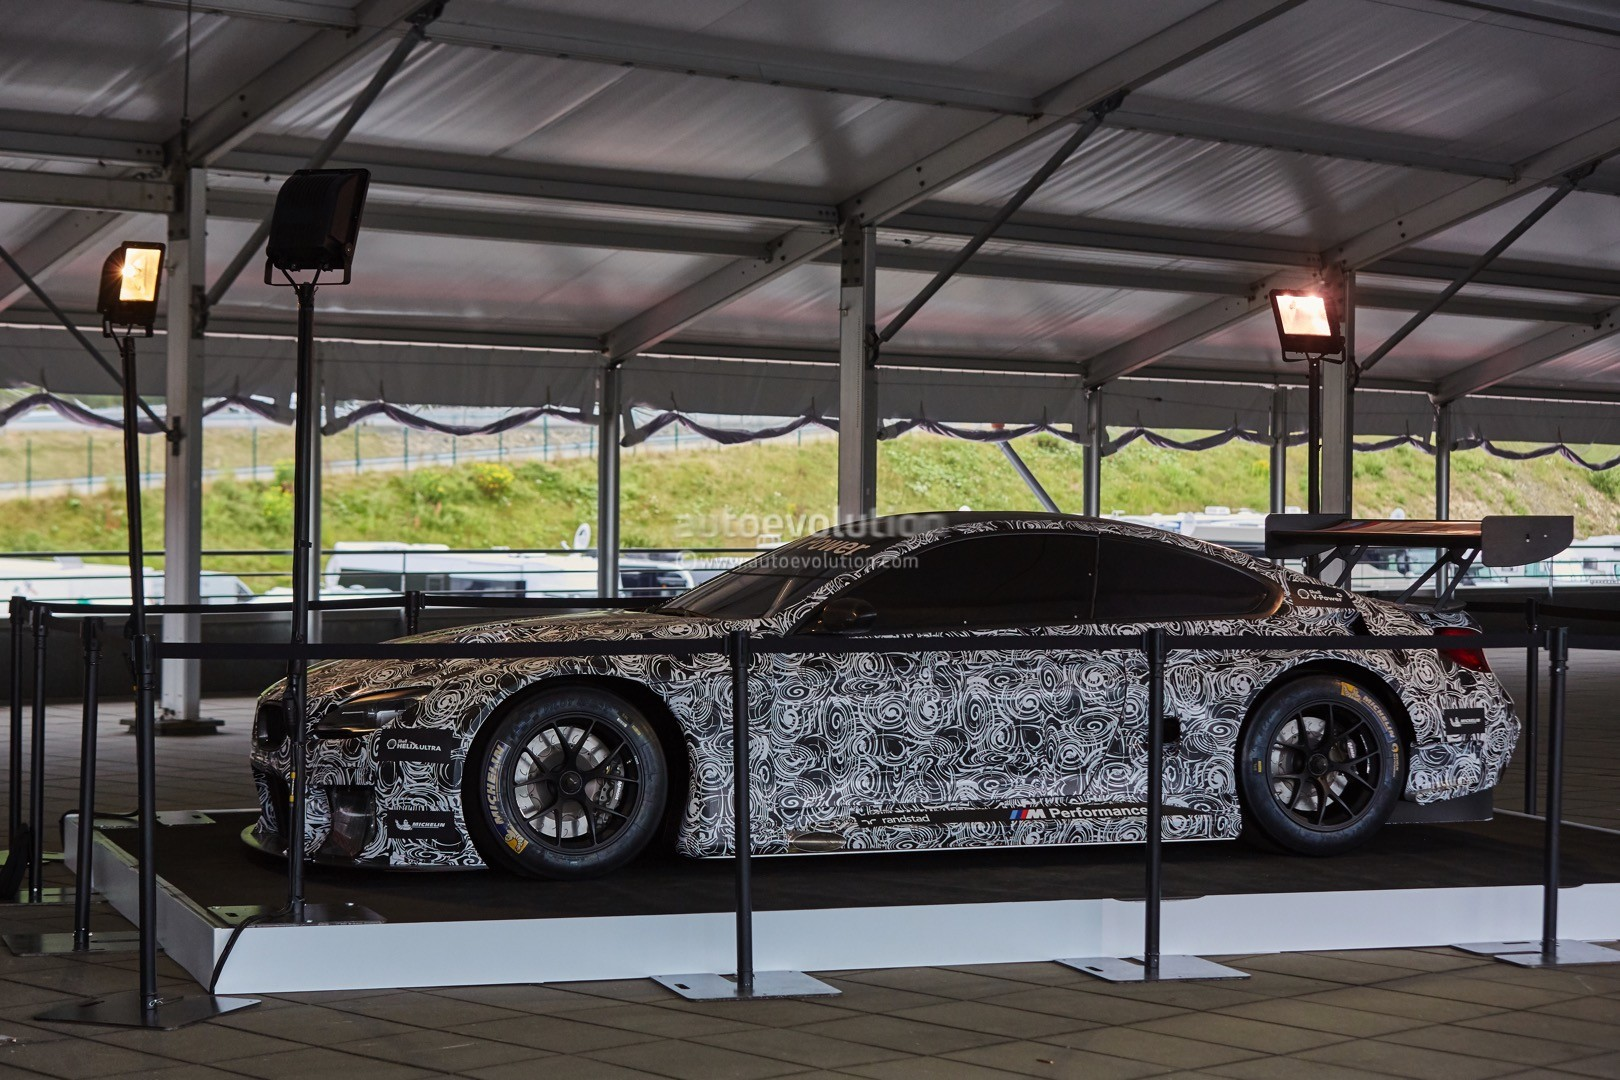 2016 Bmw M6 Gt3 Caught On Camera At The Spa Francorchamps 24 Hour Race Autoevolution